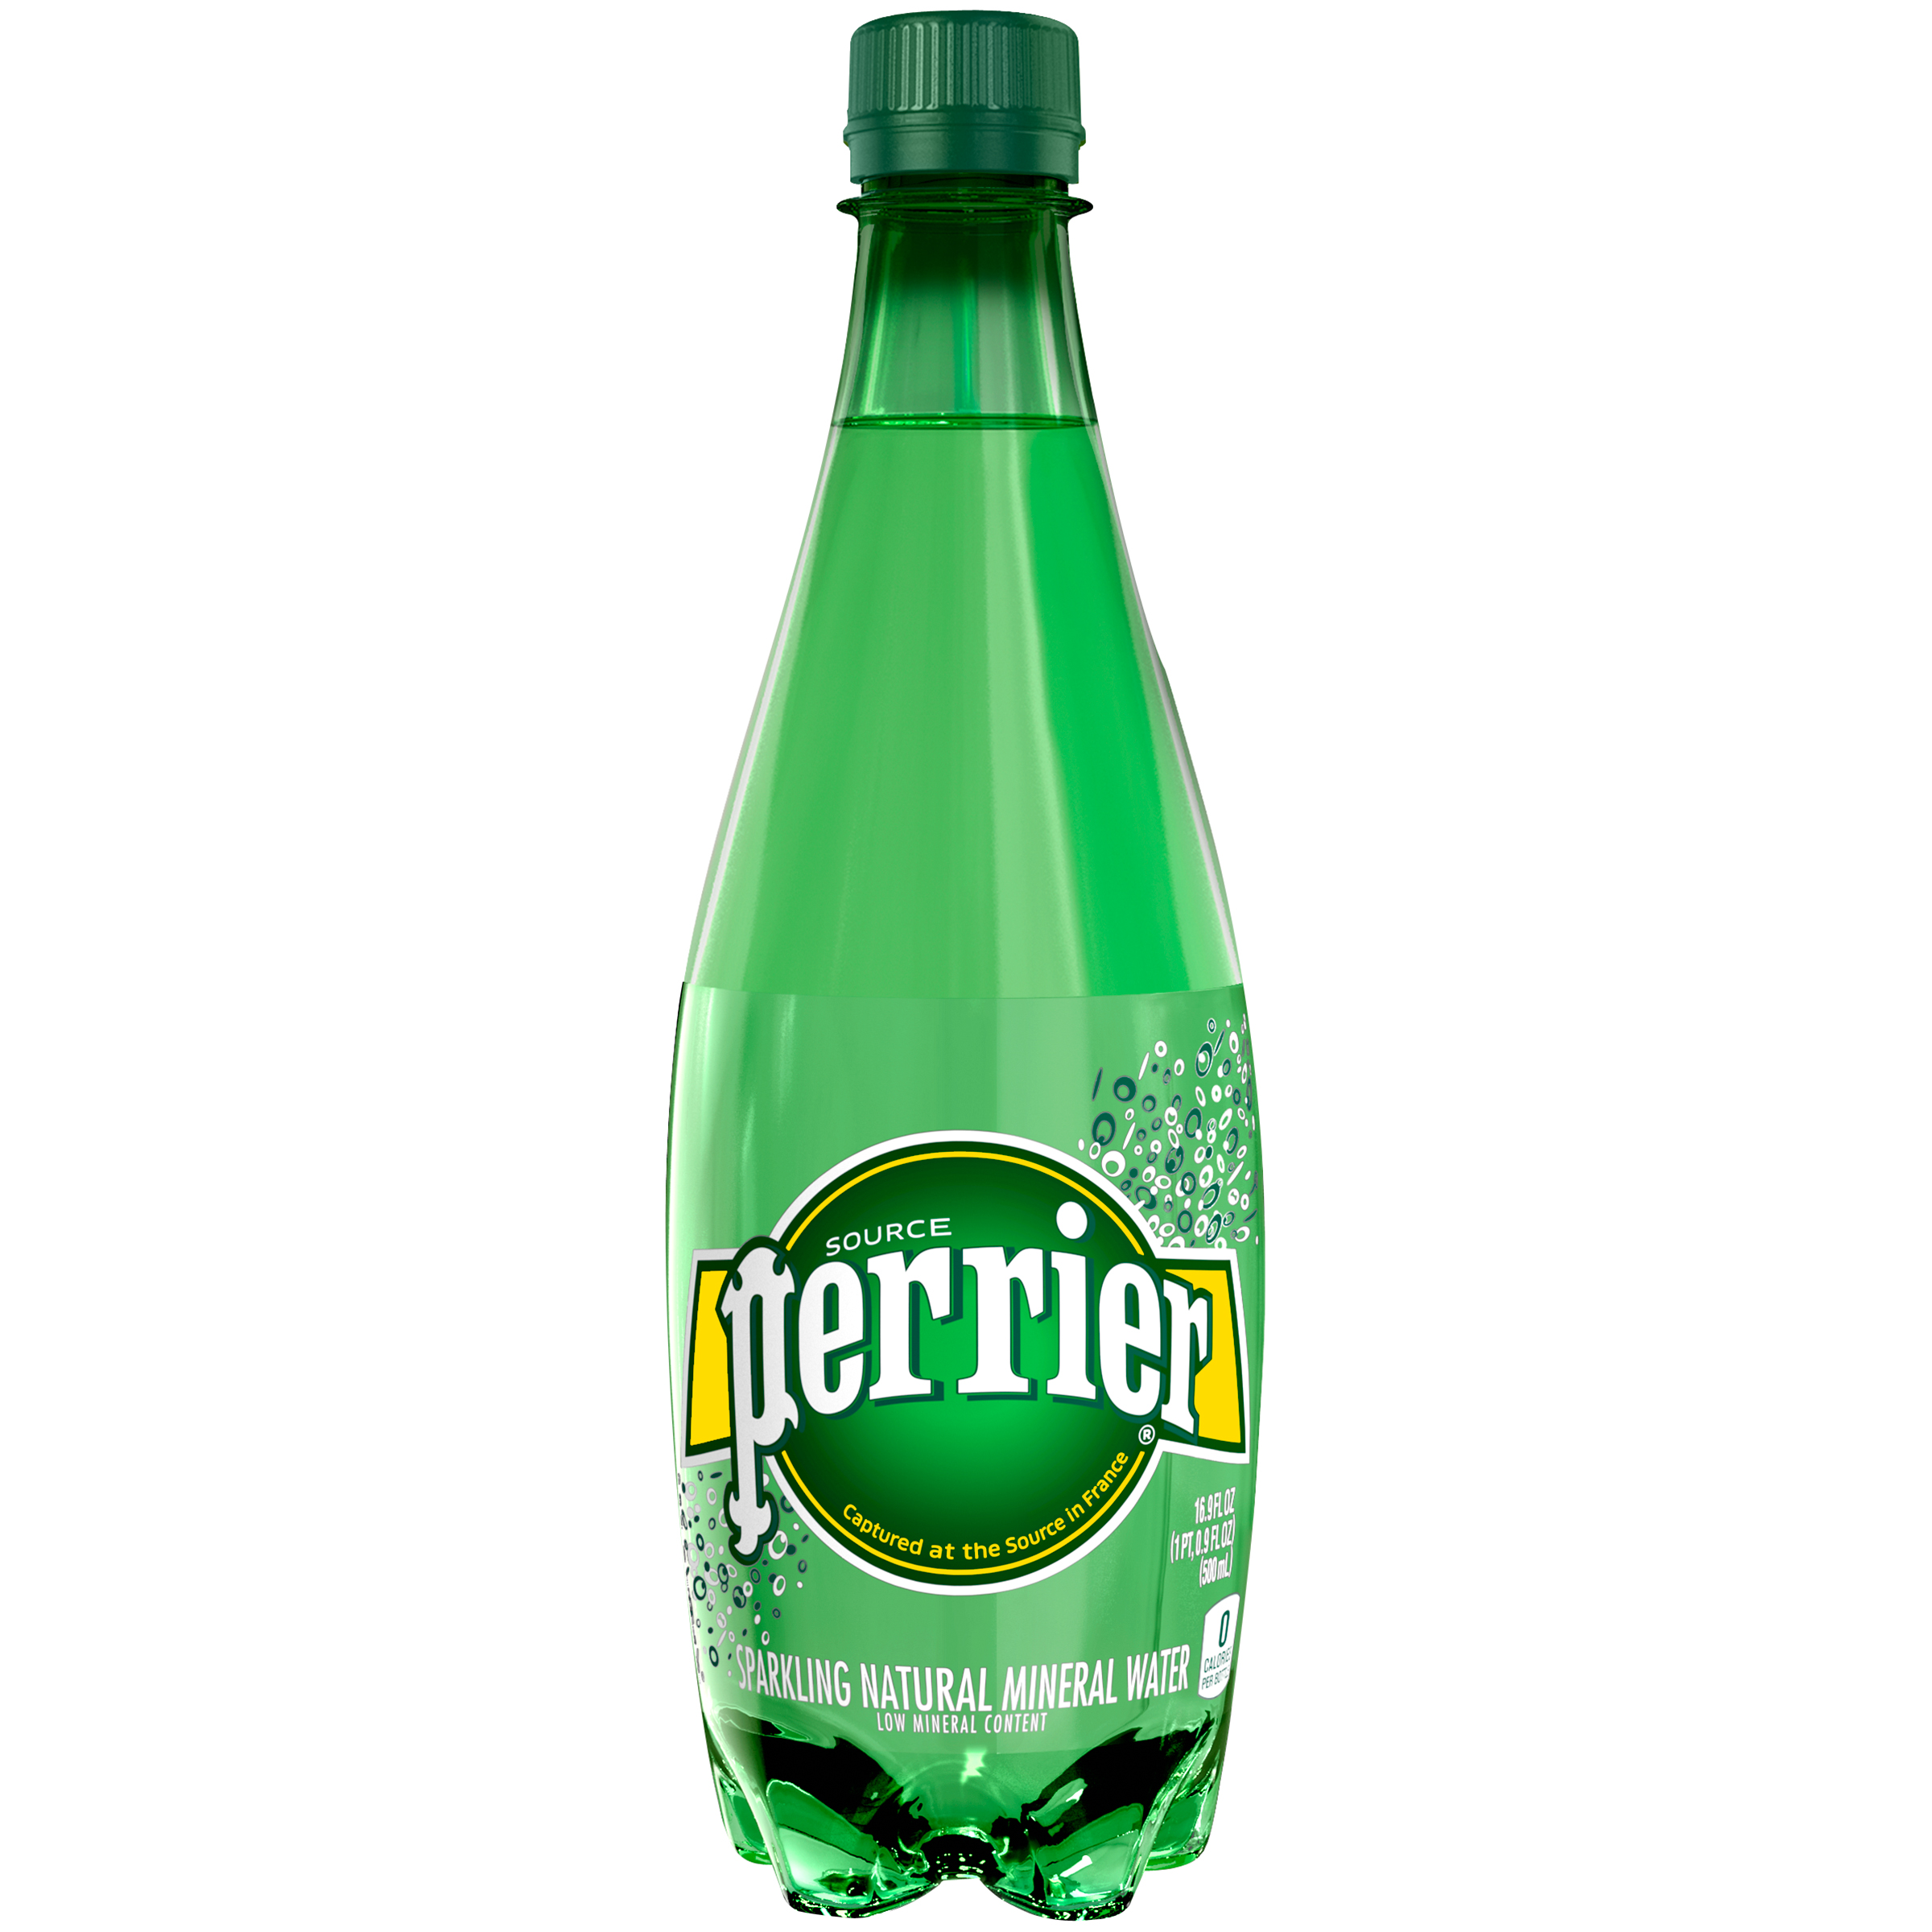 PERRIER Sparkling Natural Mineral Water, 16.9-ounce plastic bottle